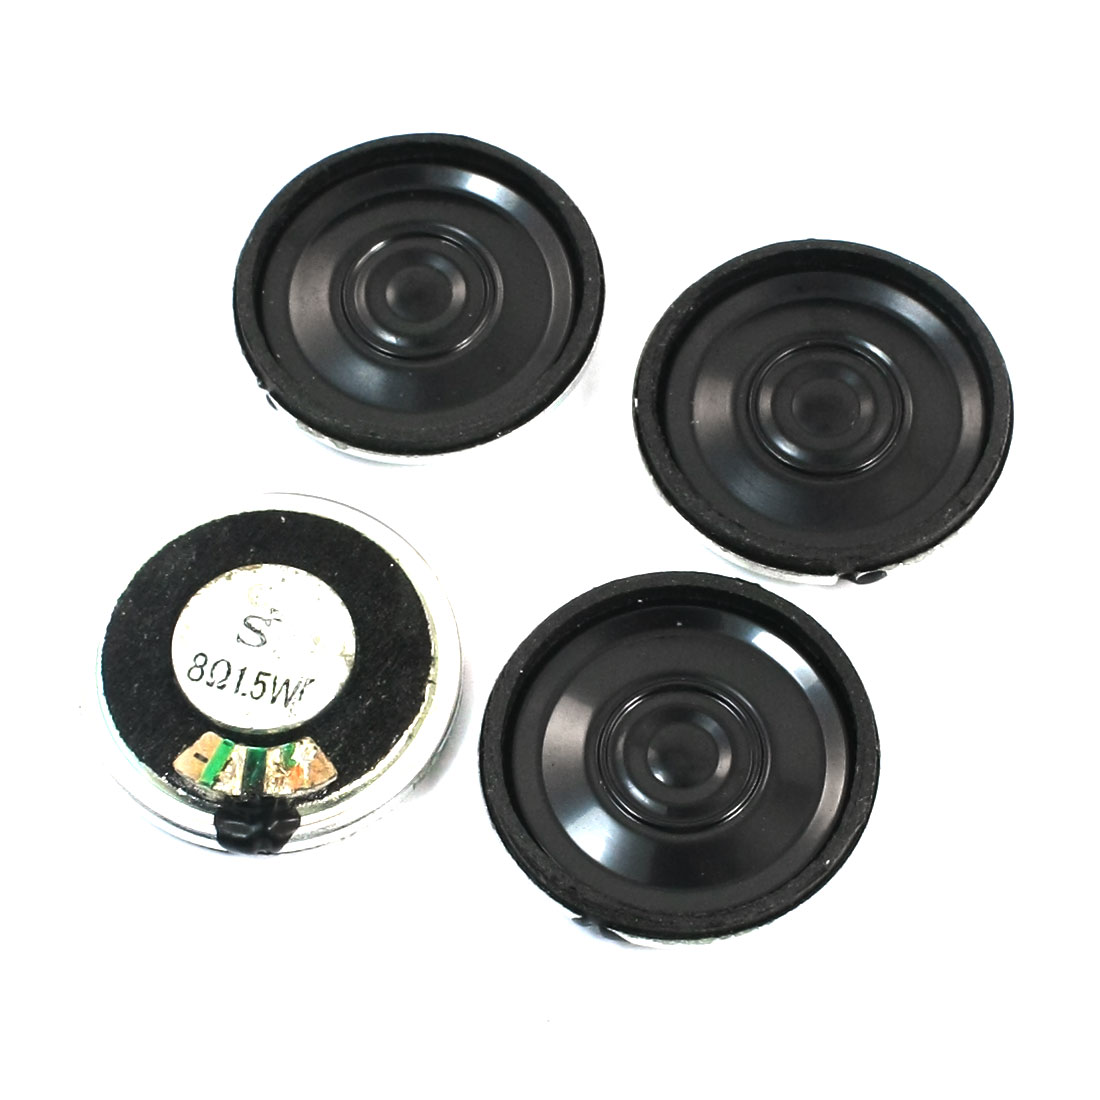 1.5W 8 Ohm Metal Shell Internal Magnet Electronic Toy Audio Speaker Amplifier Loudspeaker 4Pcs